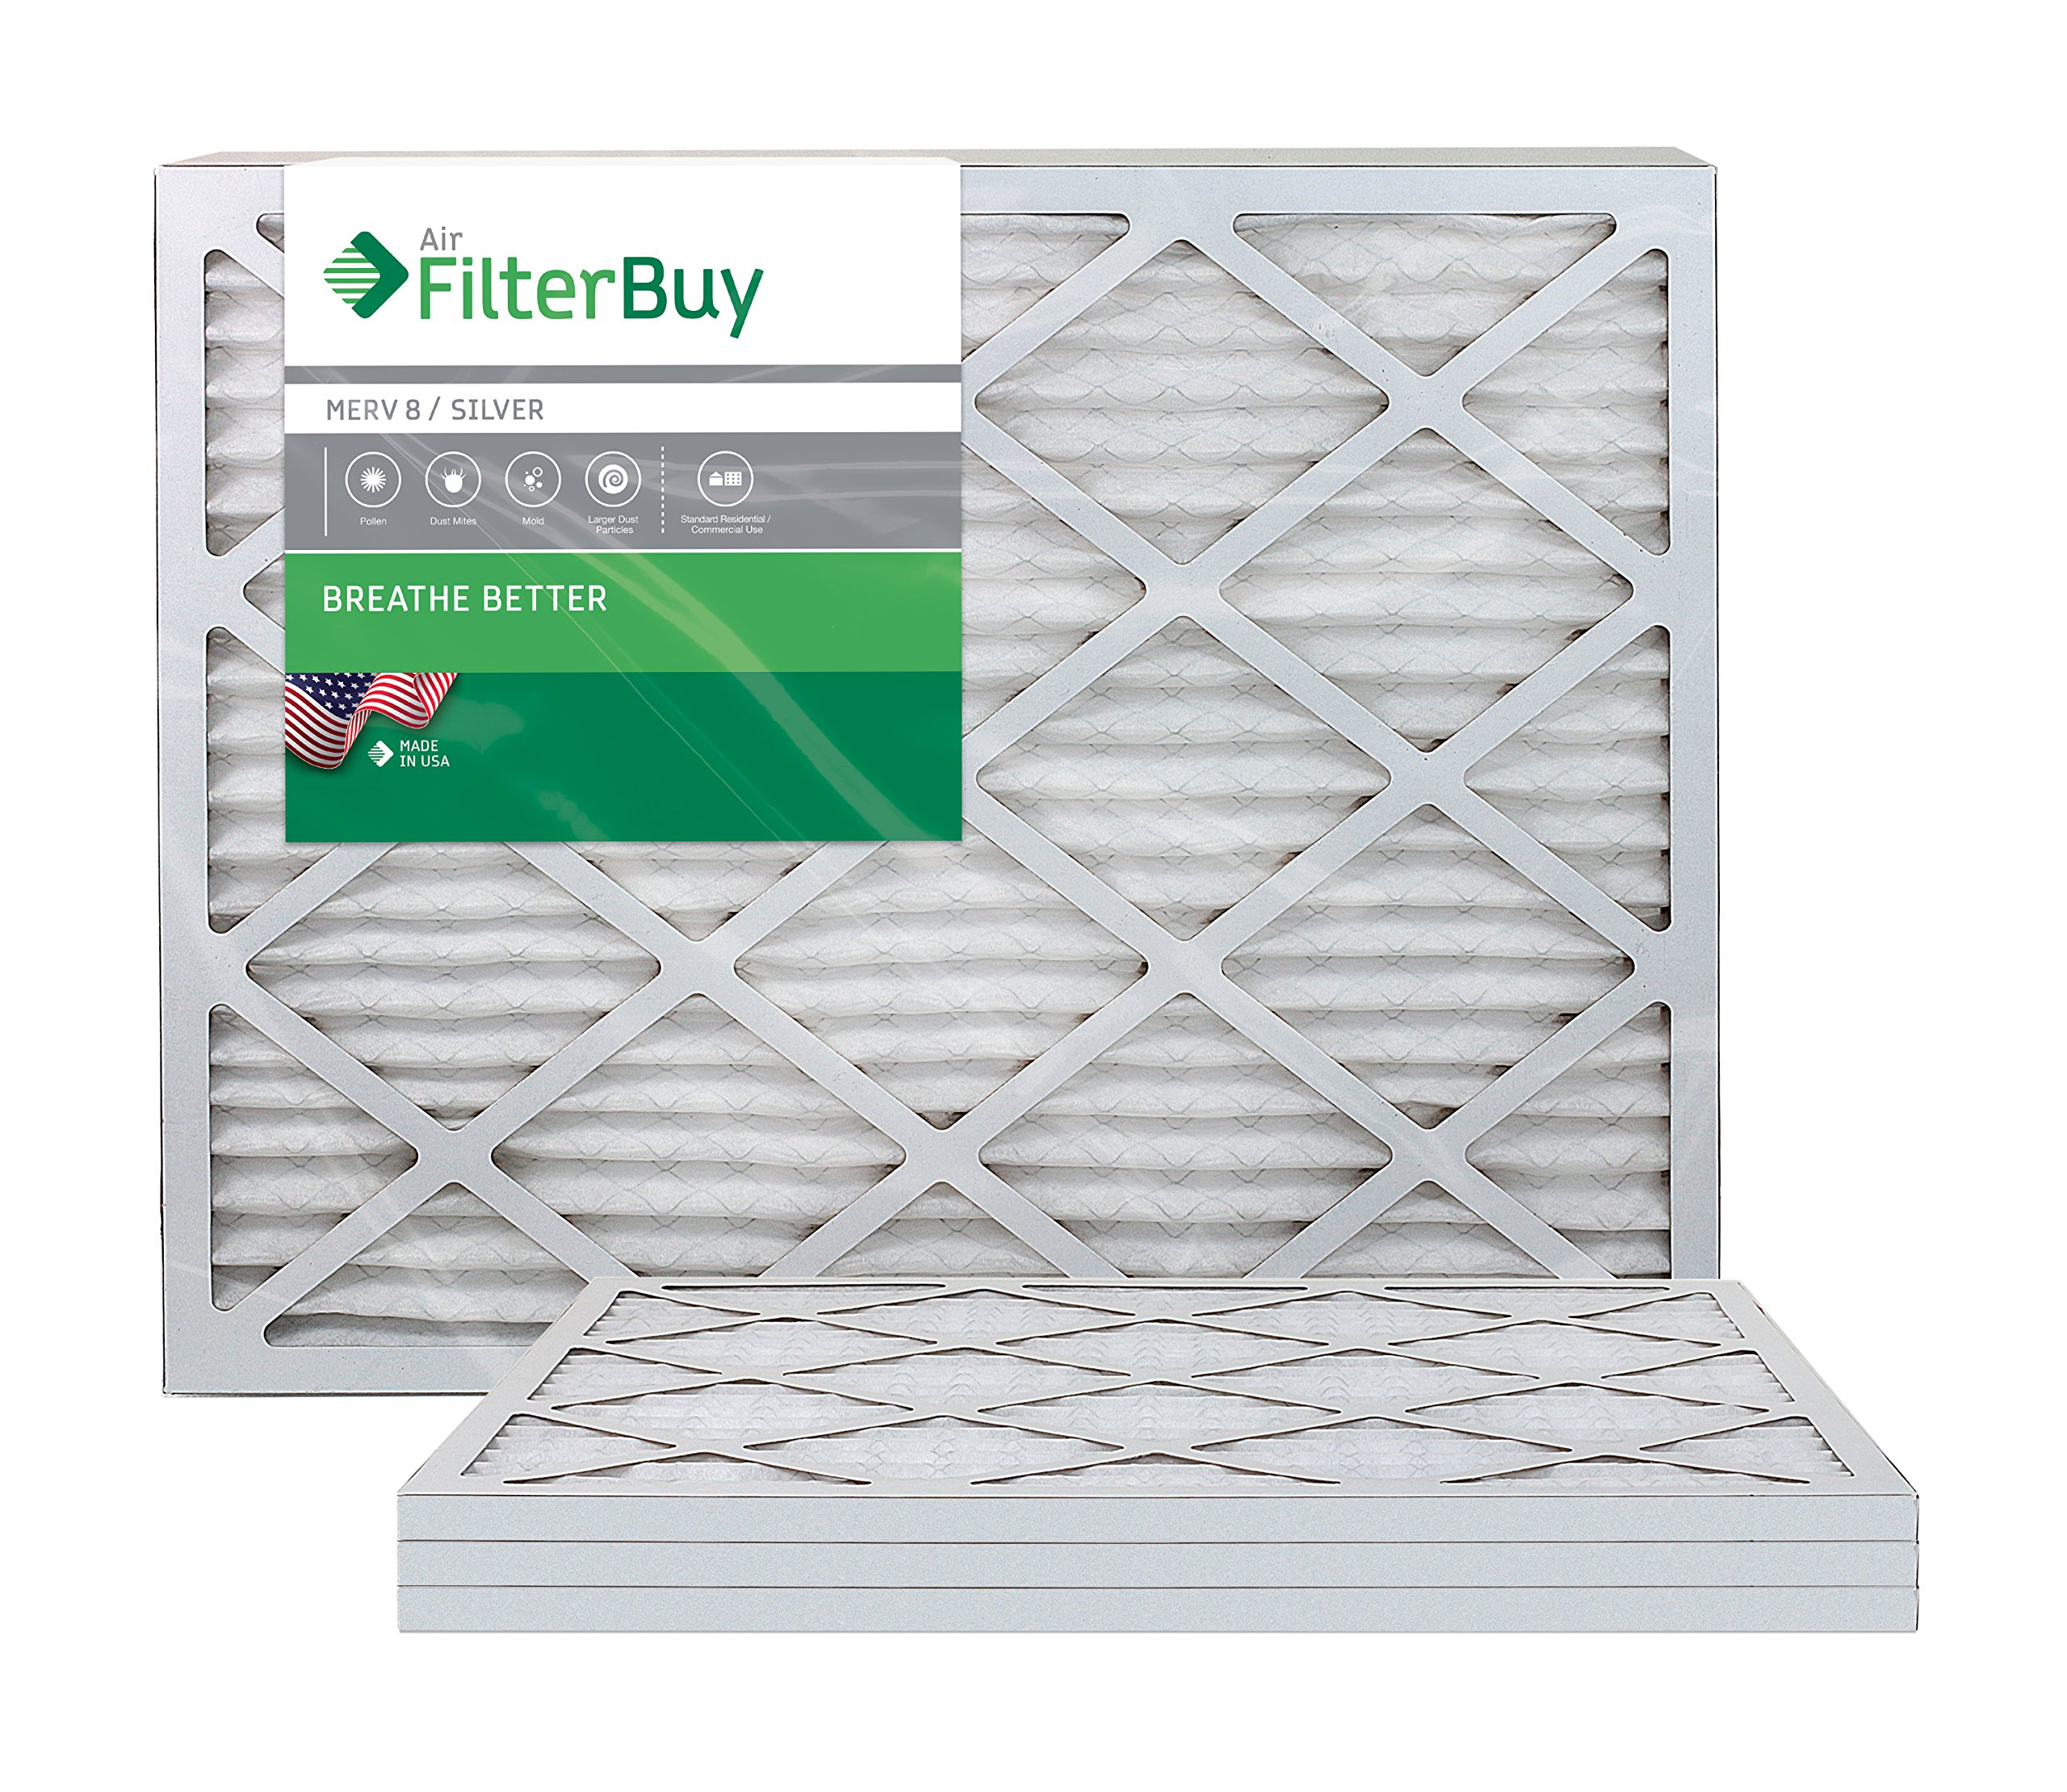 FilterBuy 24x30x1 MERV 8 Pleated AC Furnace Air Filter, 24x30x1 Silver Pack of 2 Filters